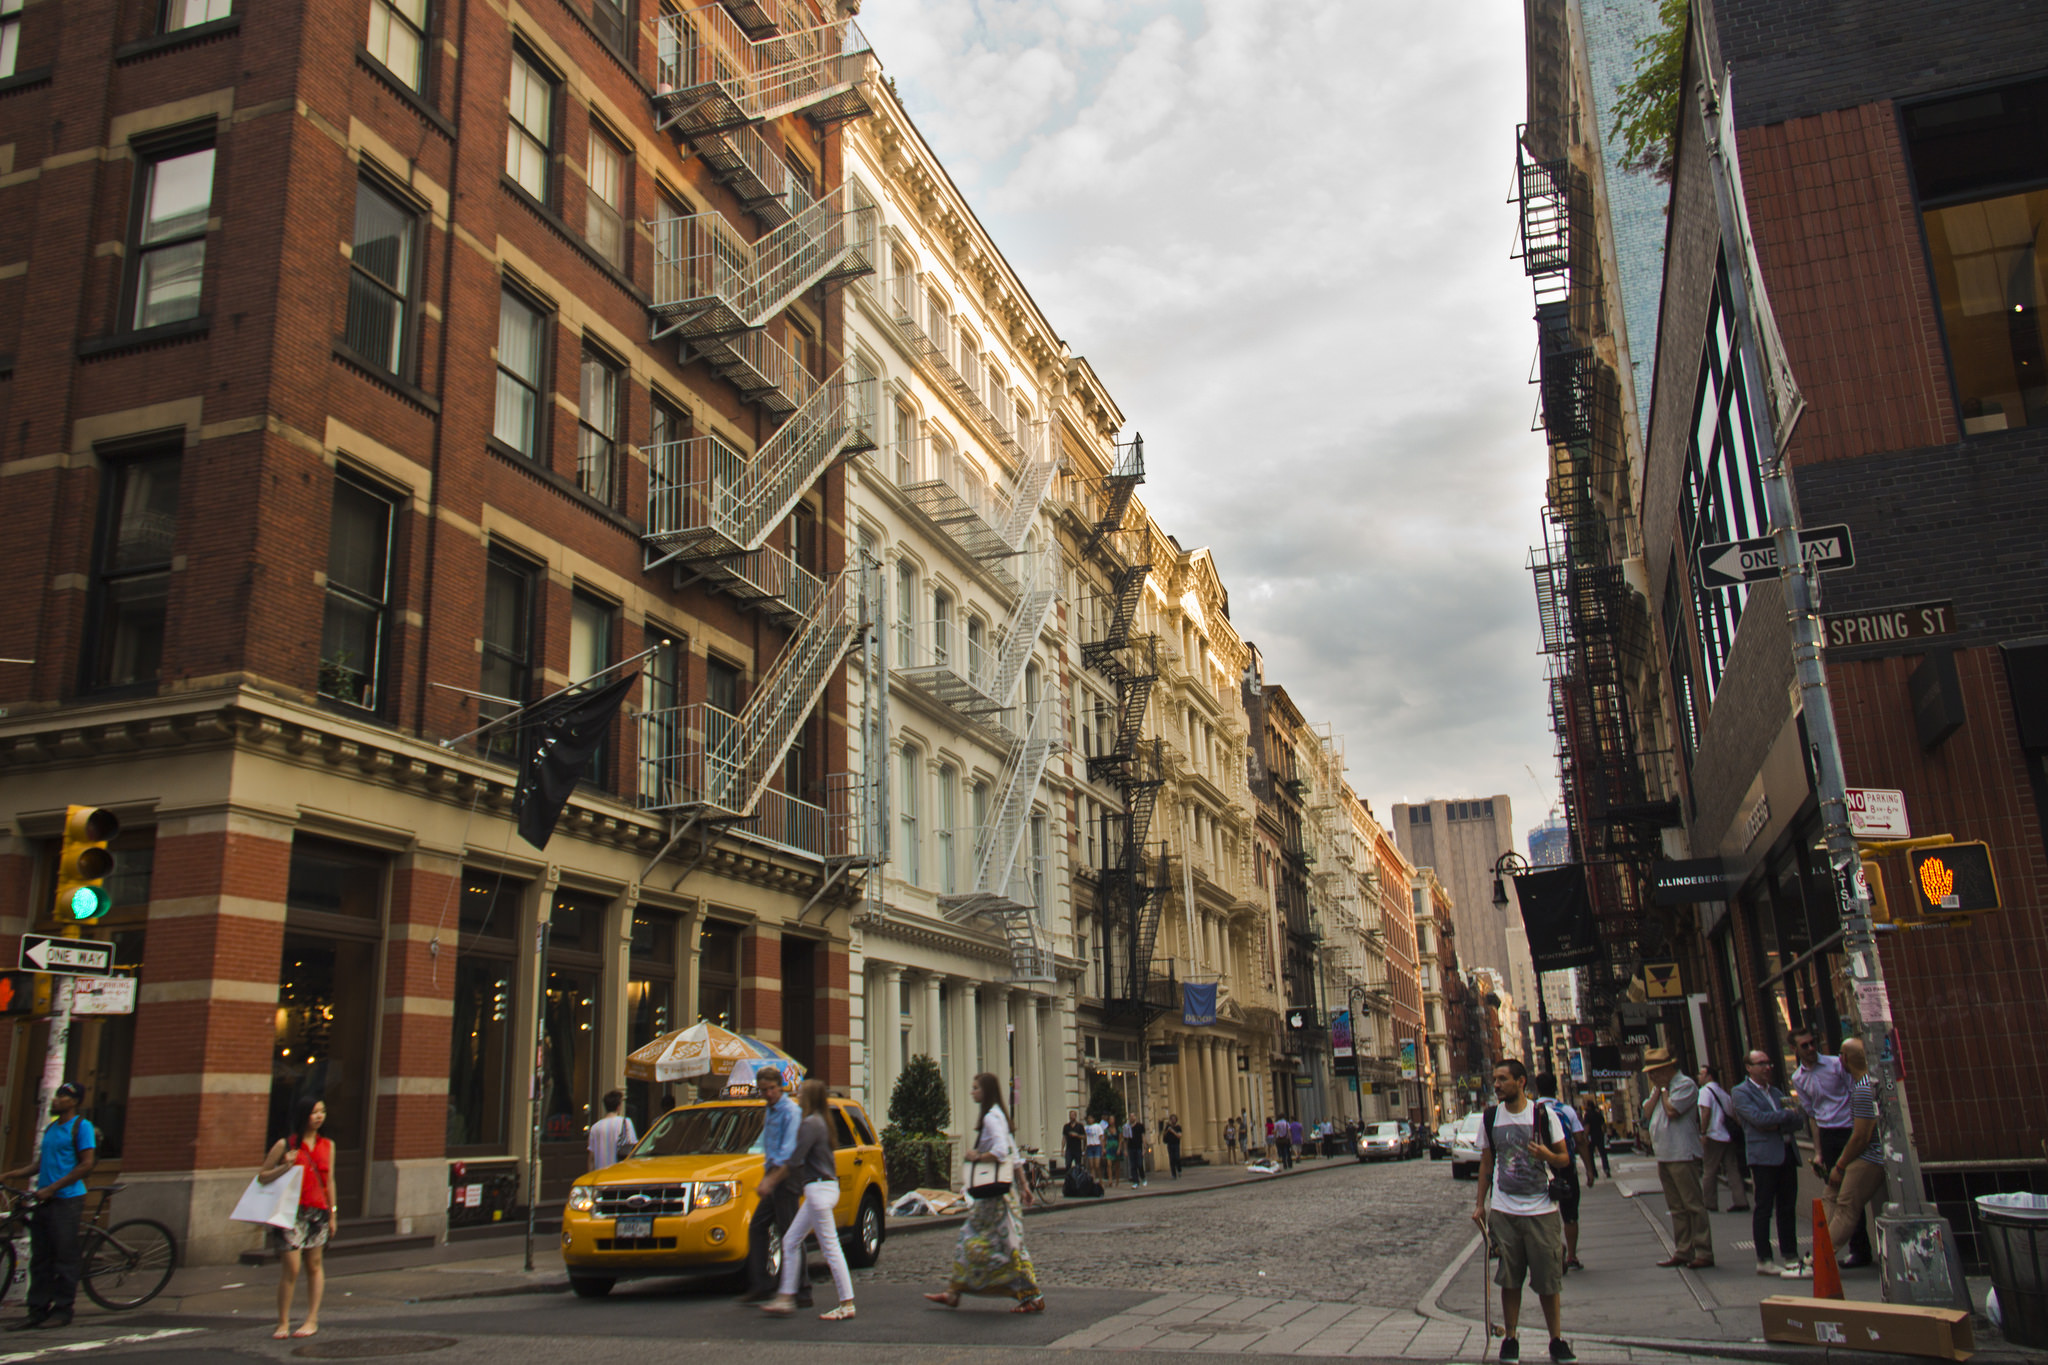 Once factories and brothels, today Greene Street is home to upscale retail.